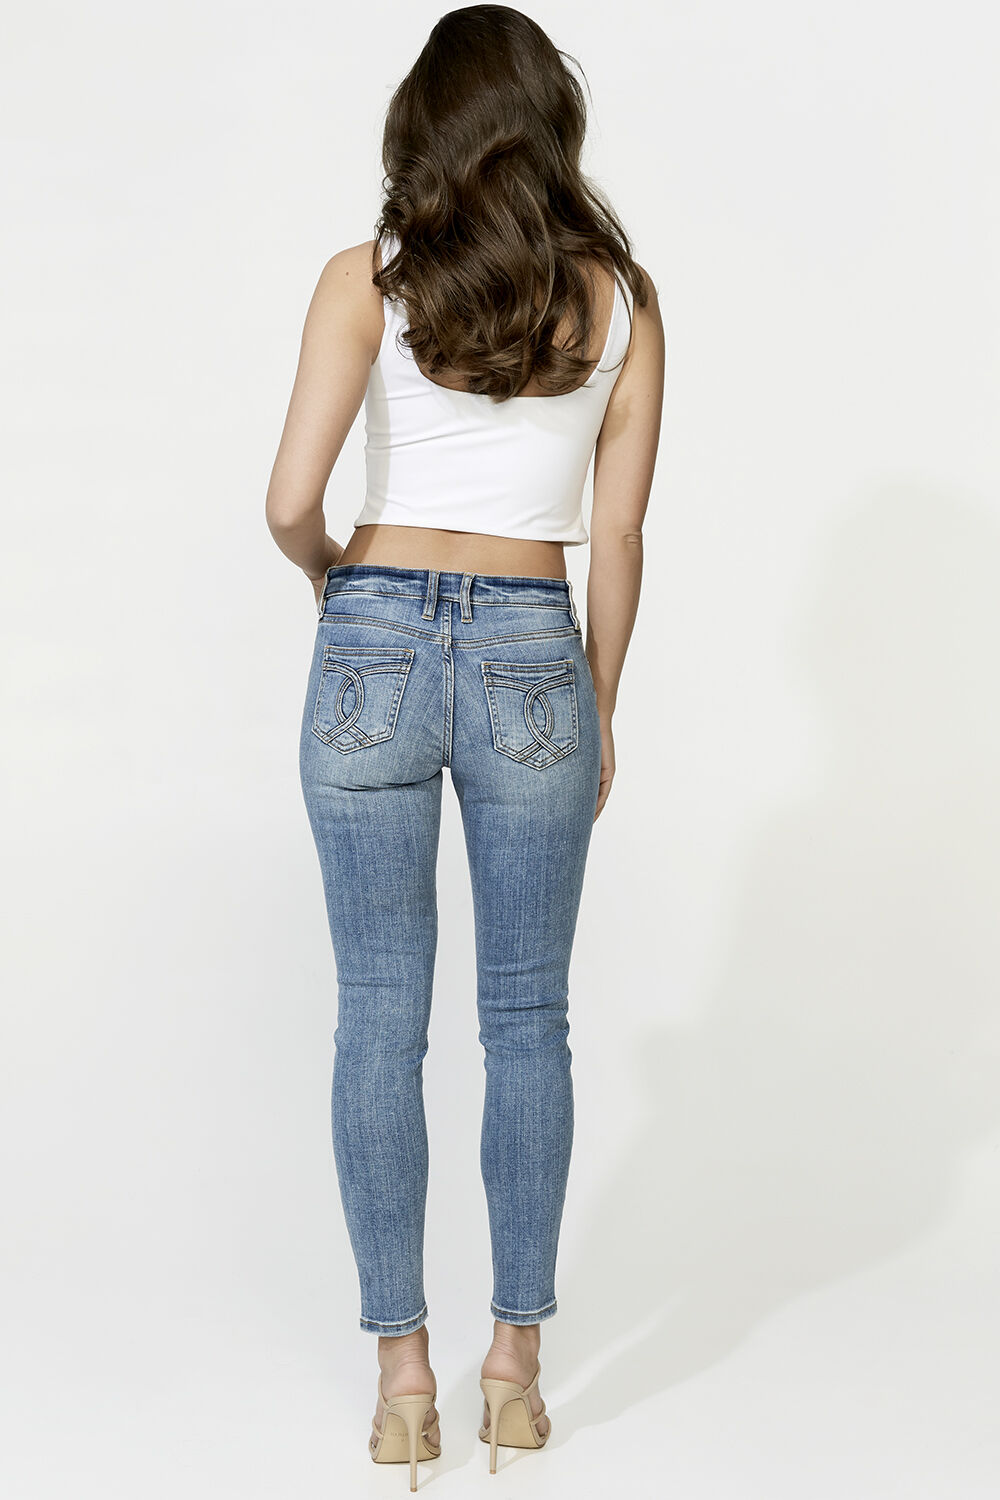 HAYLEY HIPSTER JEAN in colour CITADEL